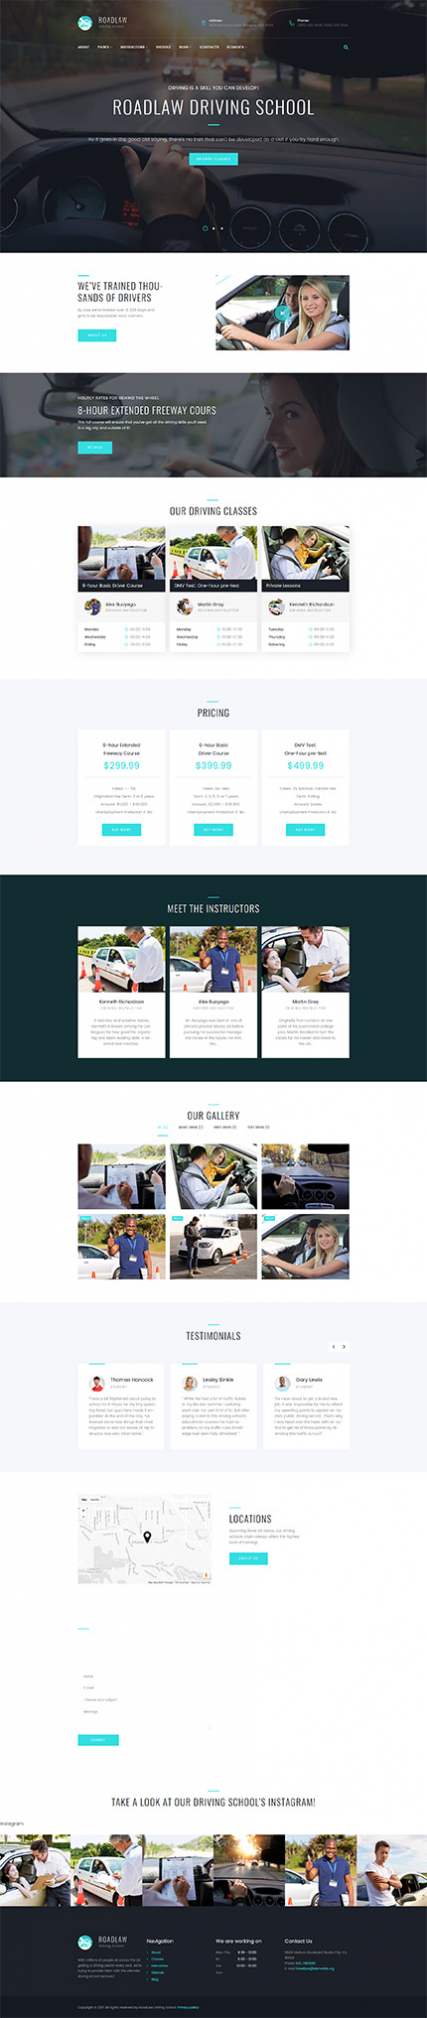 RoadLaw - Driving School Responsive WordPress Theme WordPress Theme